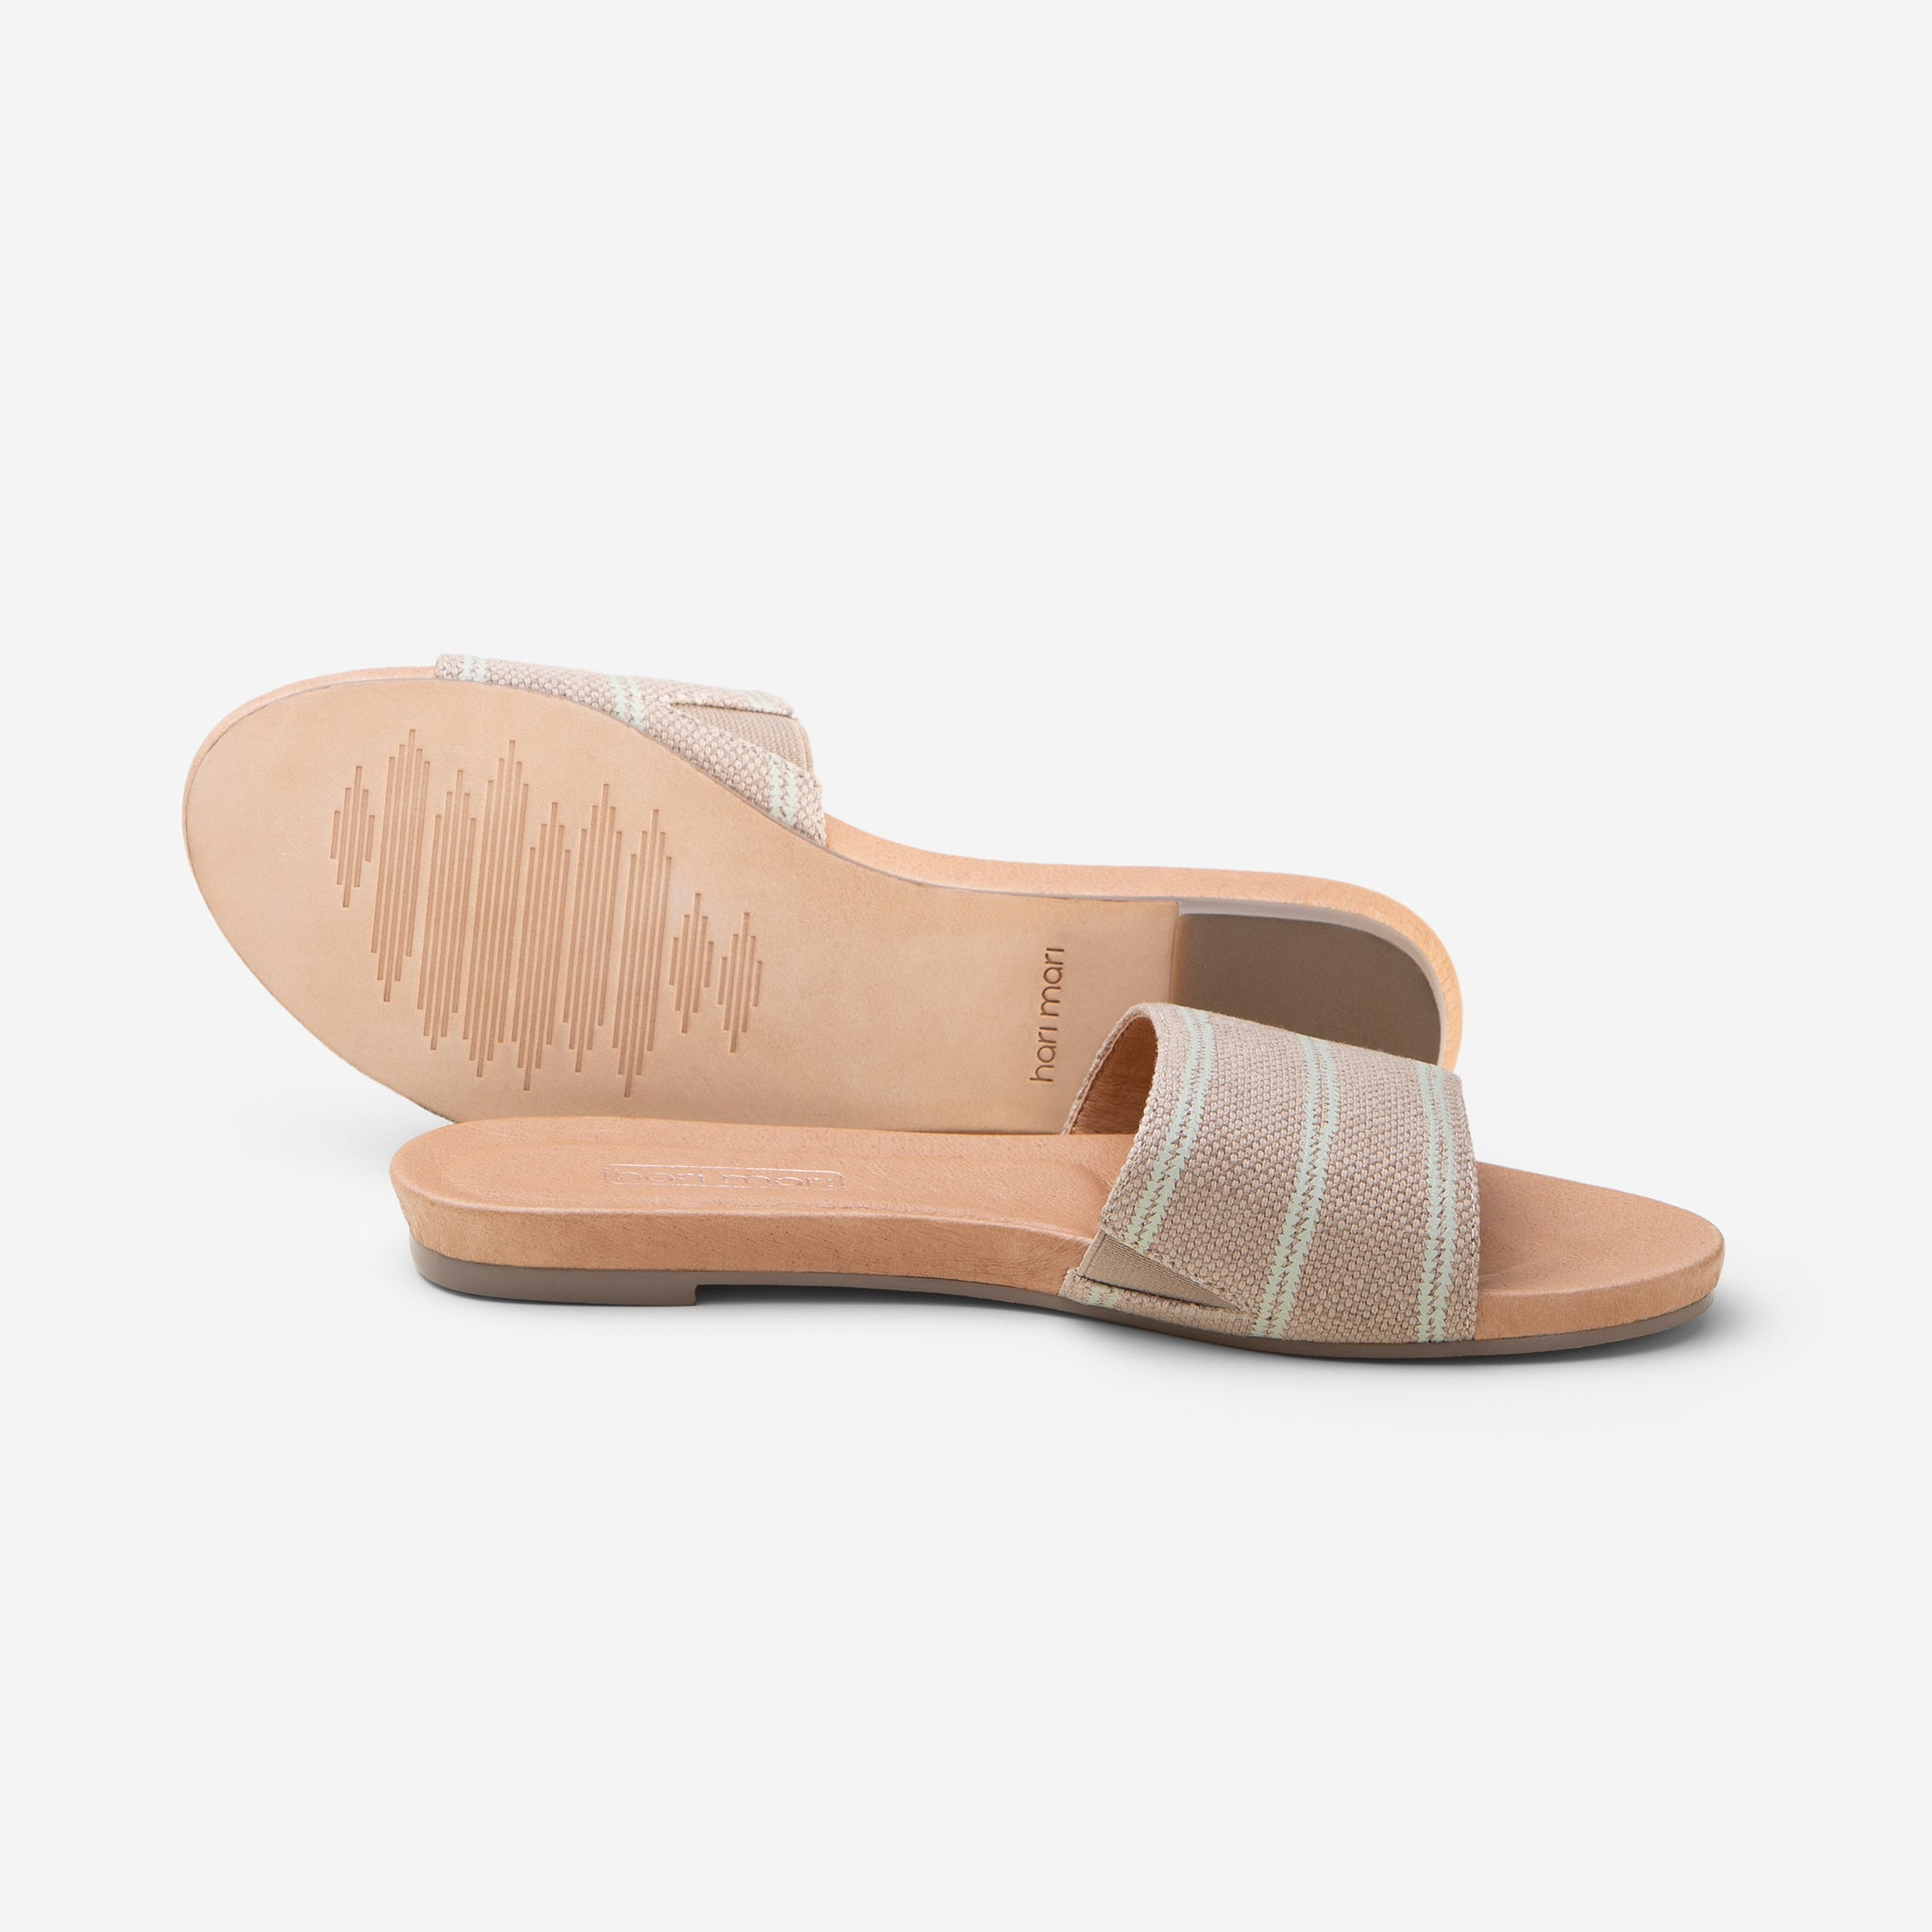 Hari Mari Sydney Woven Sandal in Natural on white background showing sandal and bottom of sandal genuine leather outsole